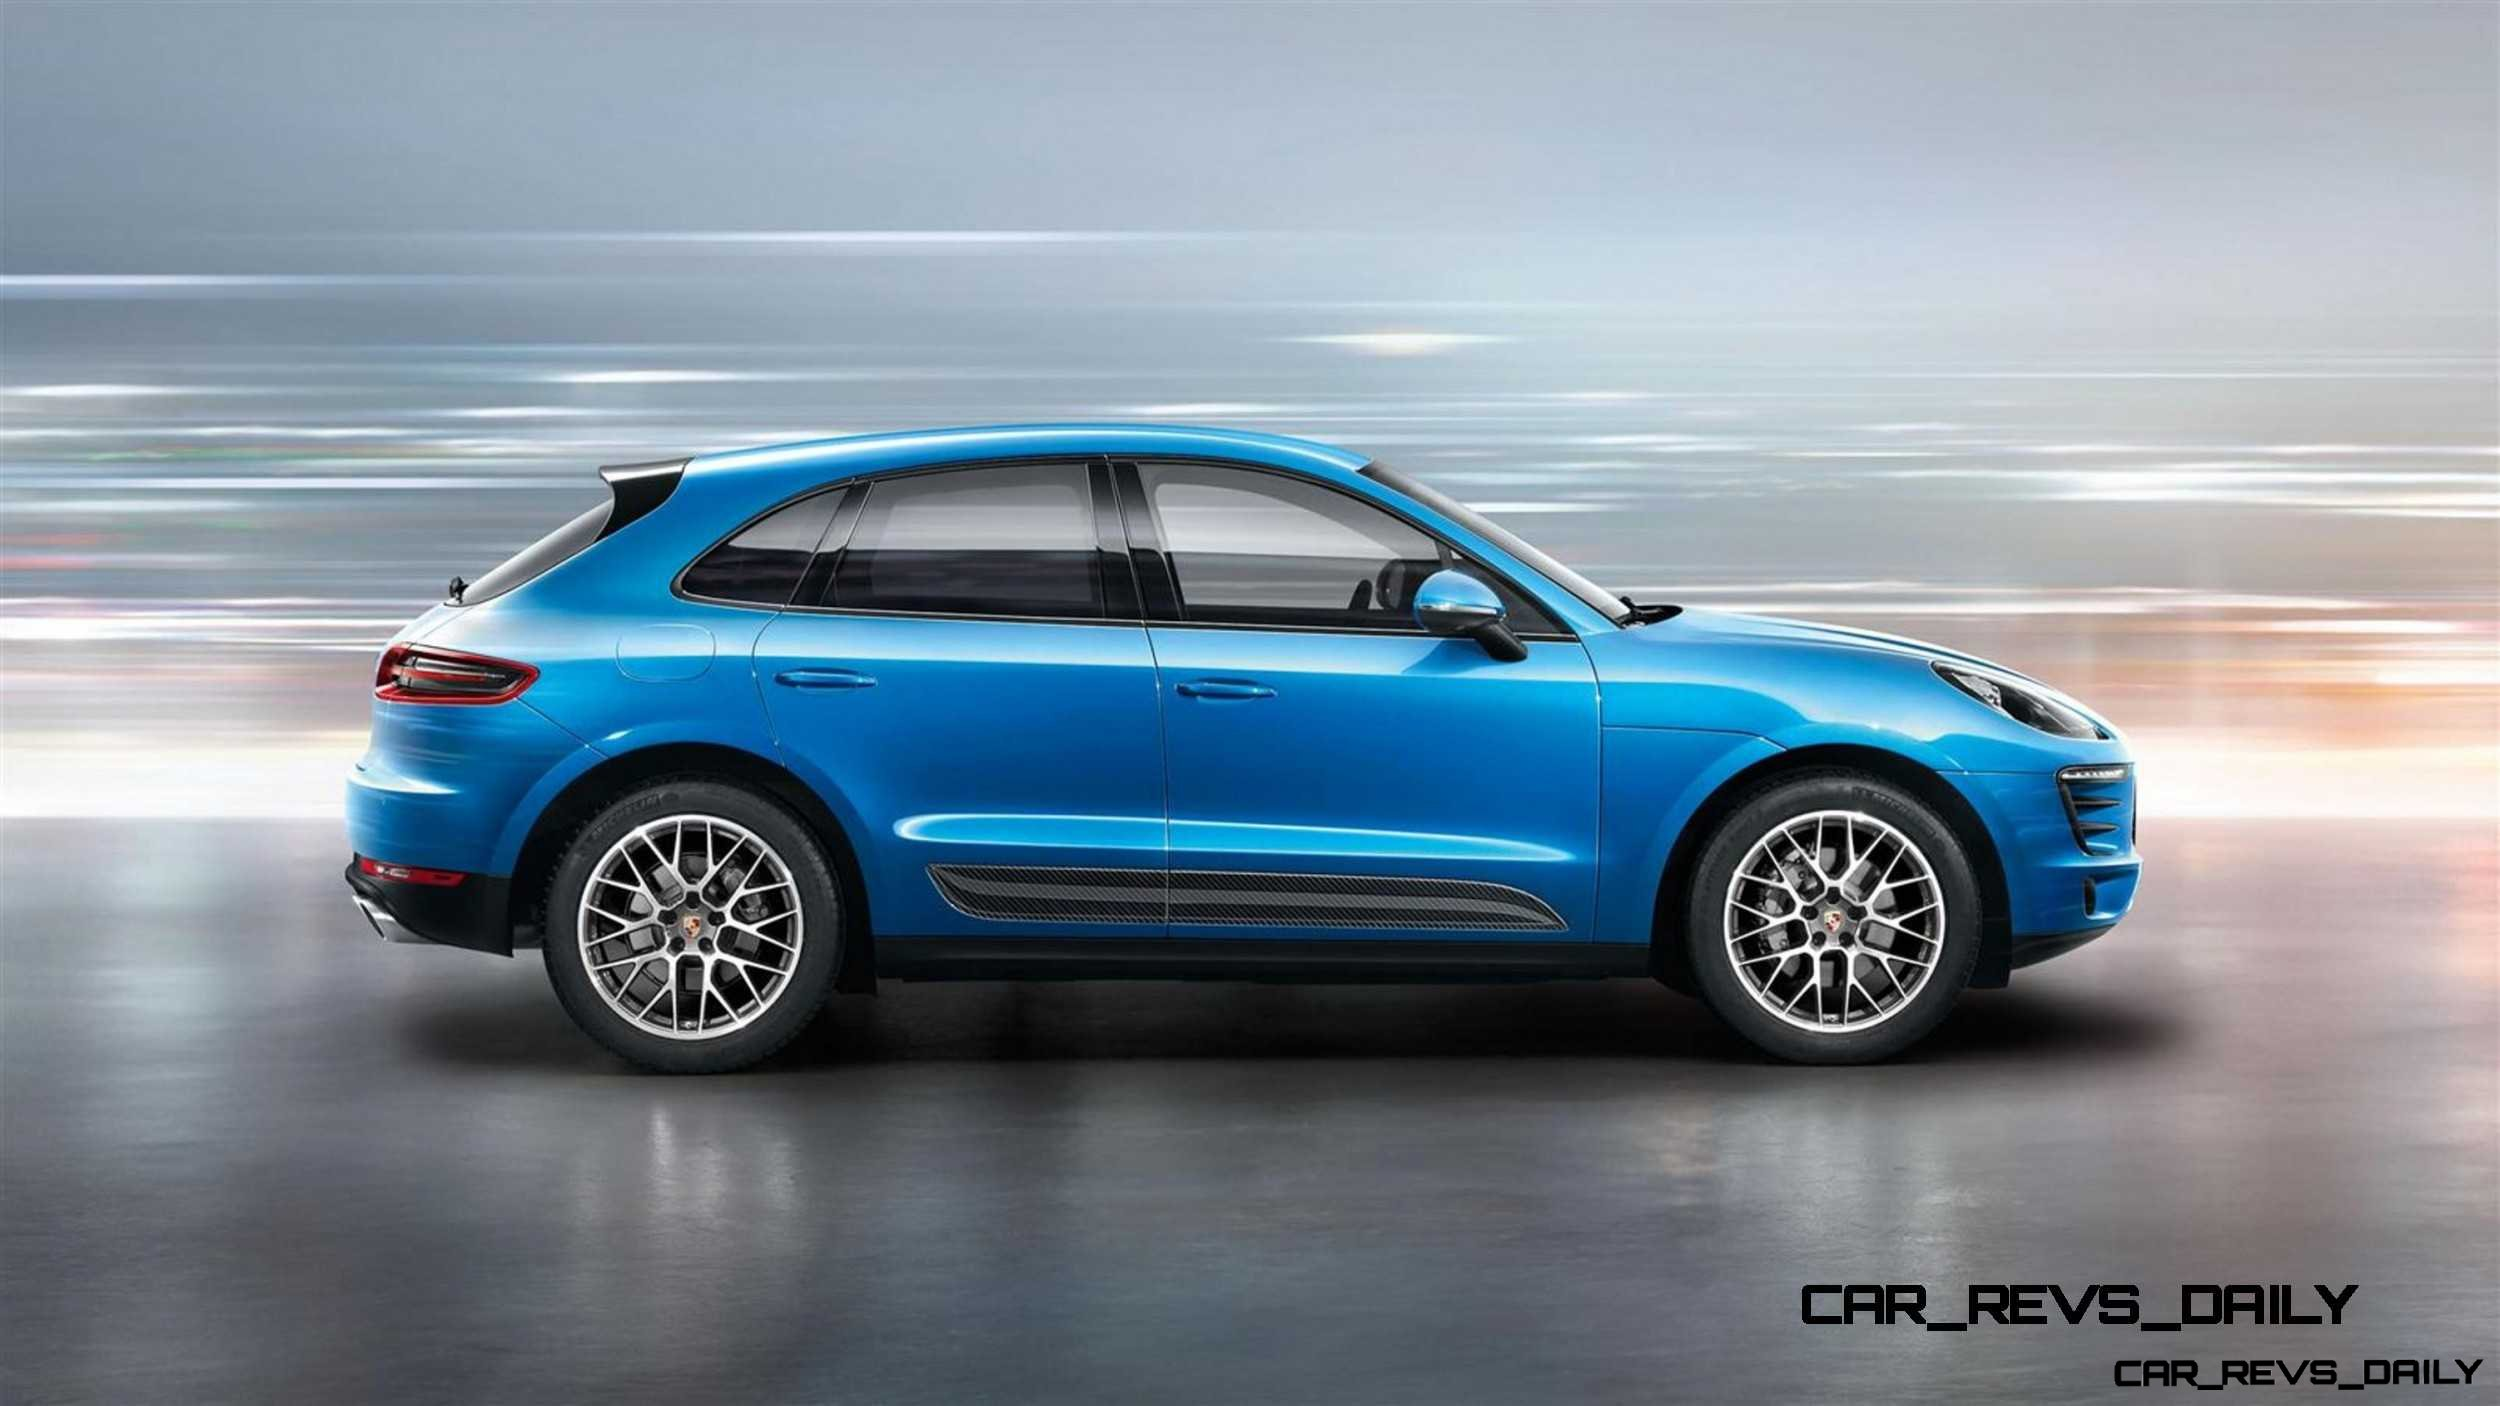 2015 Porsche Macan - Latest Images - CarRevsDaily.com 28